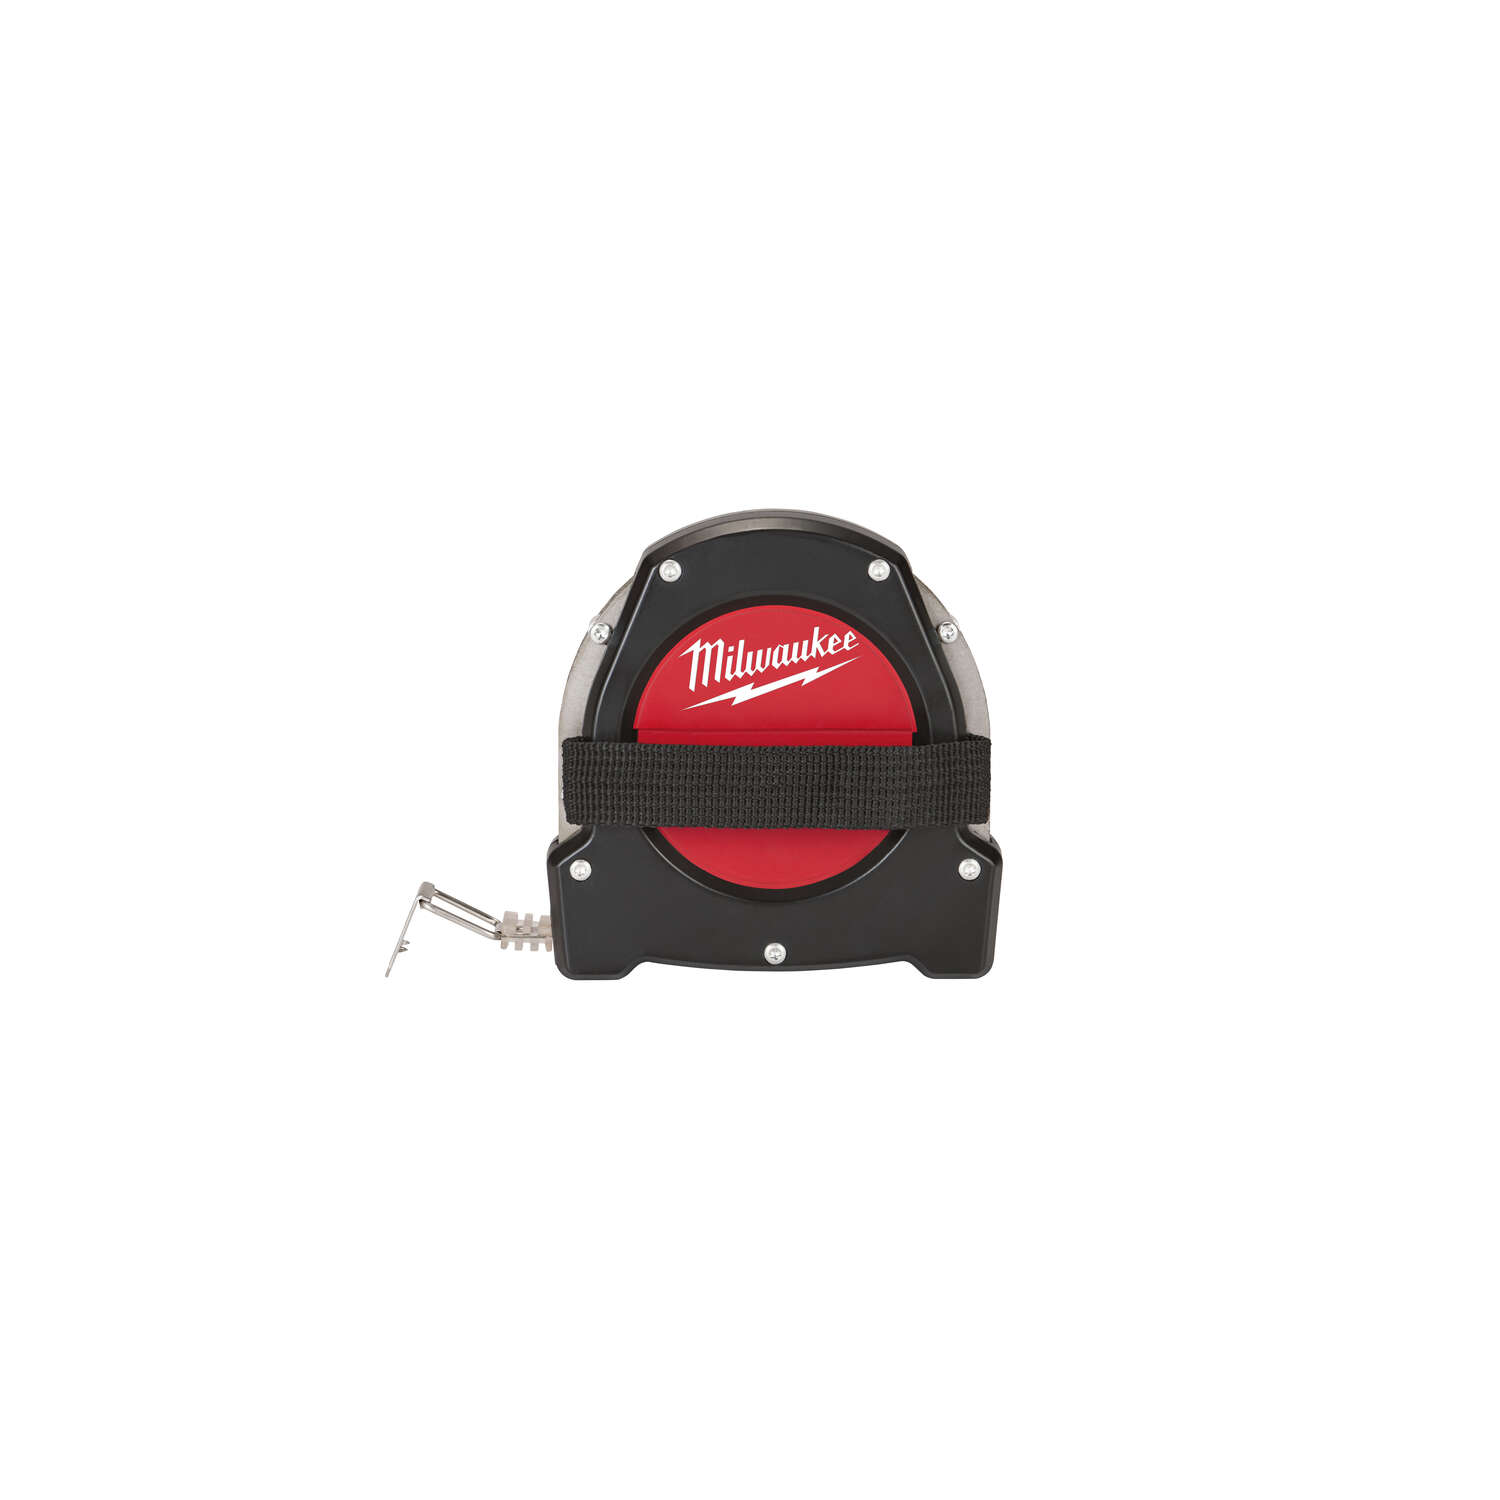 Milwaukee  100 ft. L x 1.5 in. W Closed Reel  Long Tape Measure  Red  1 pc.